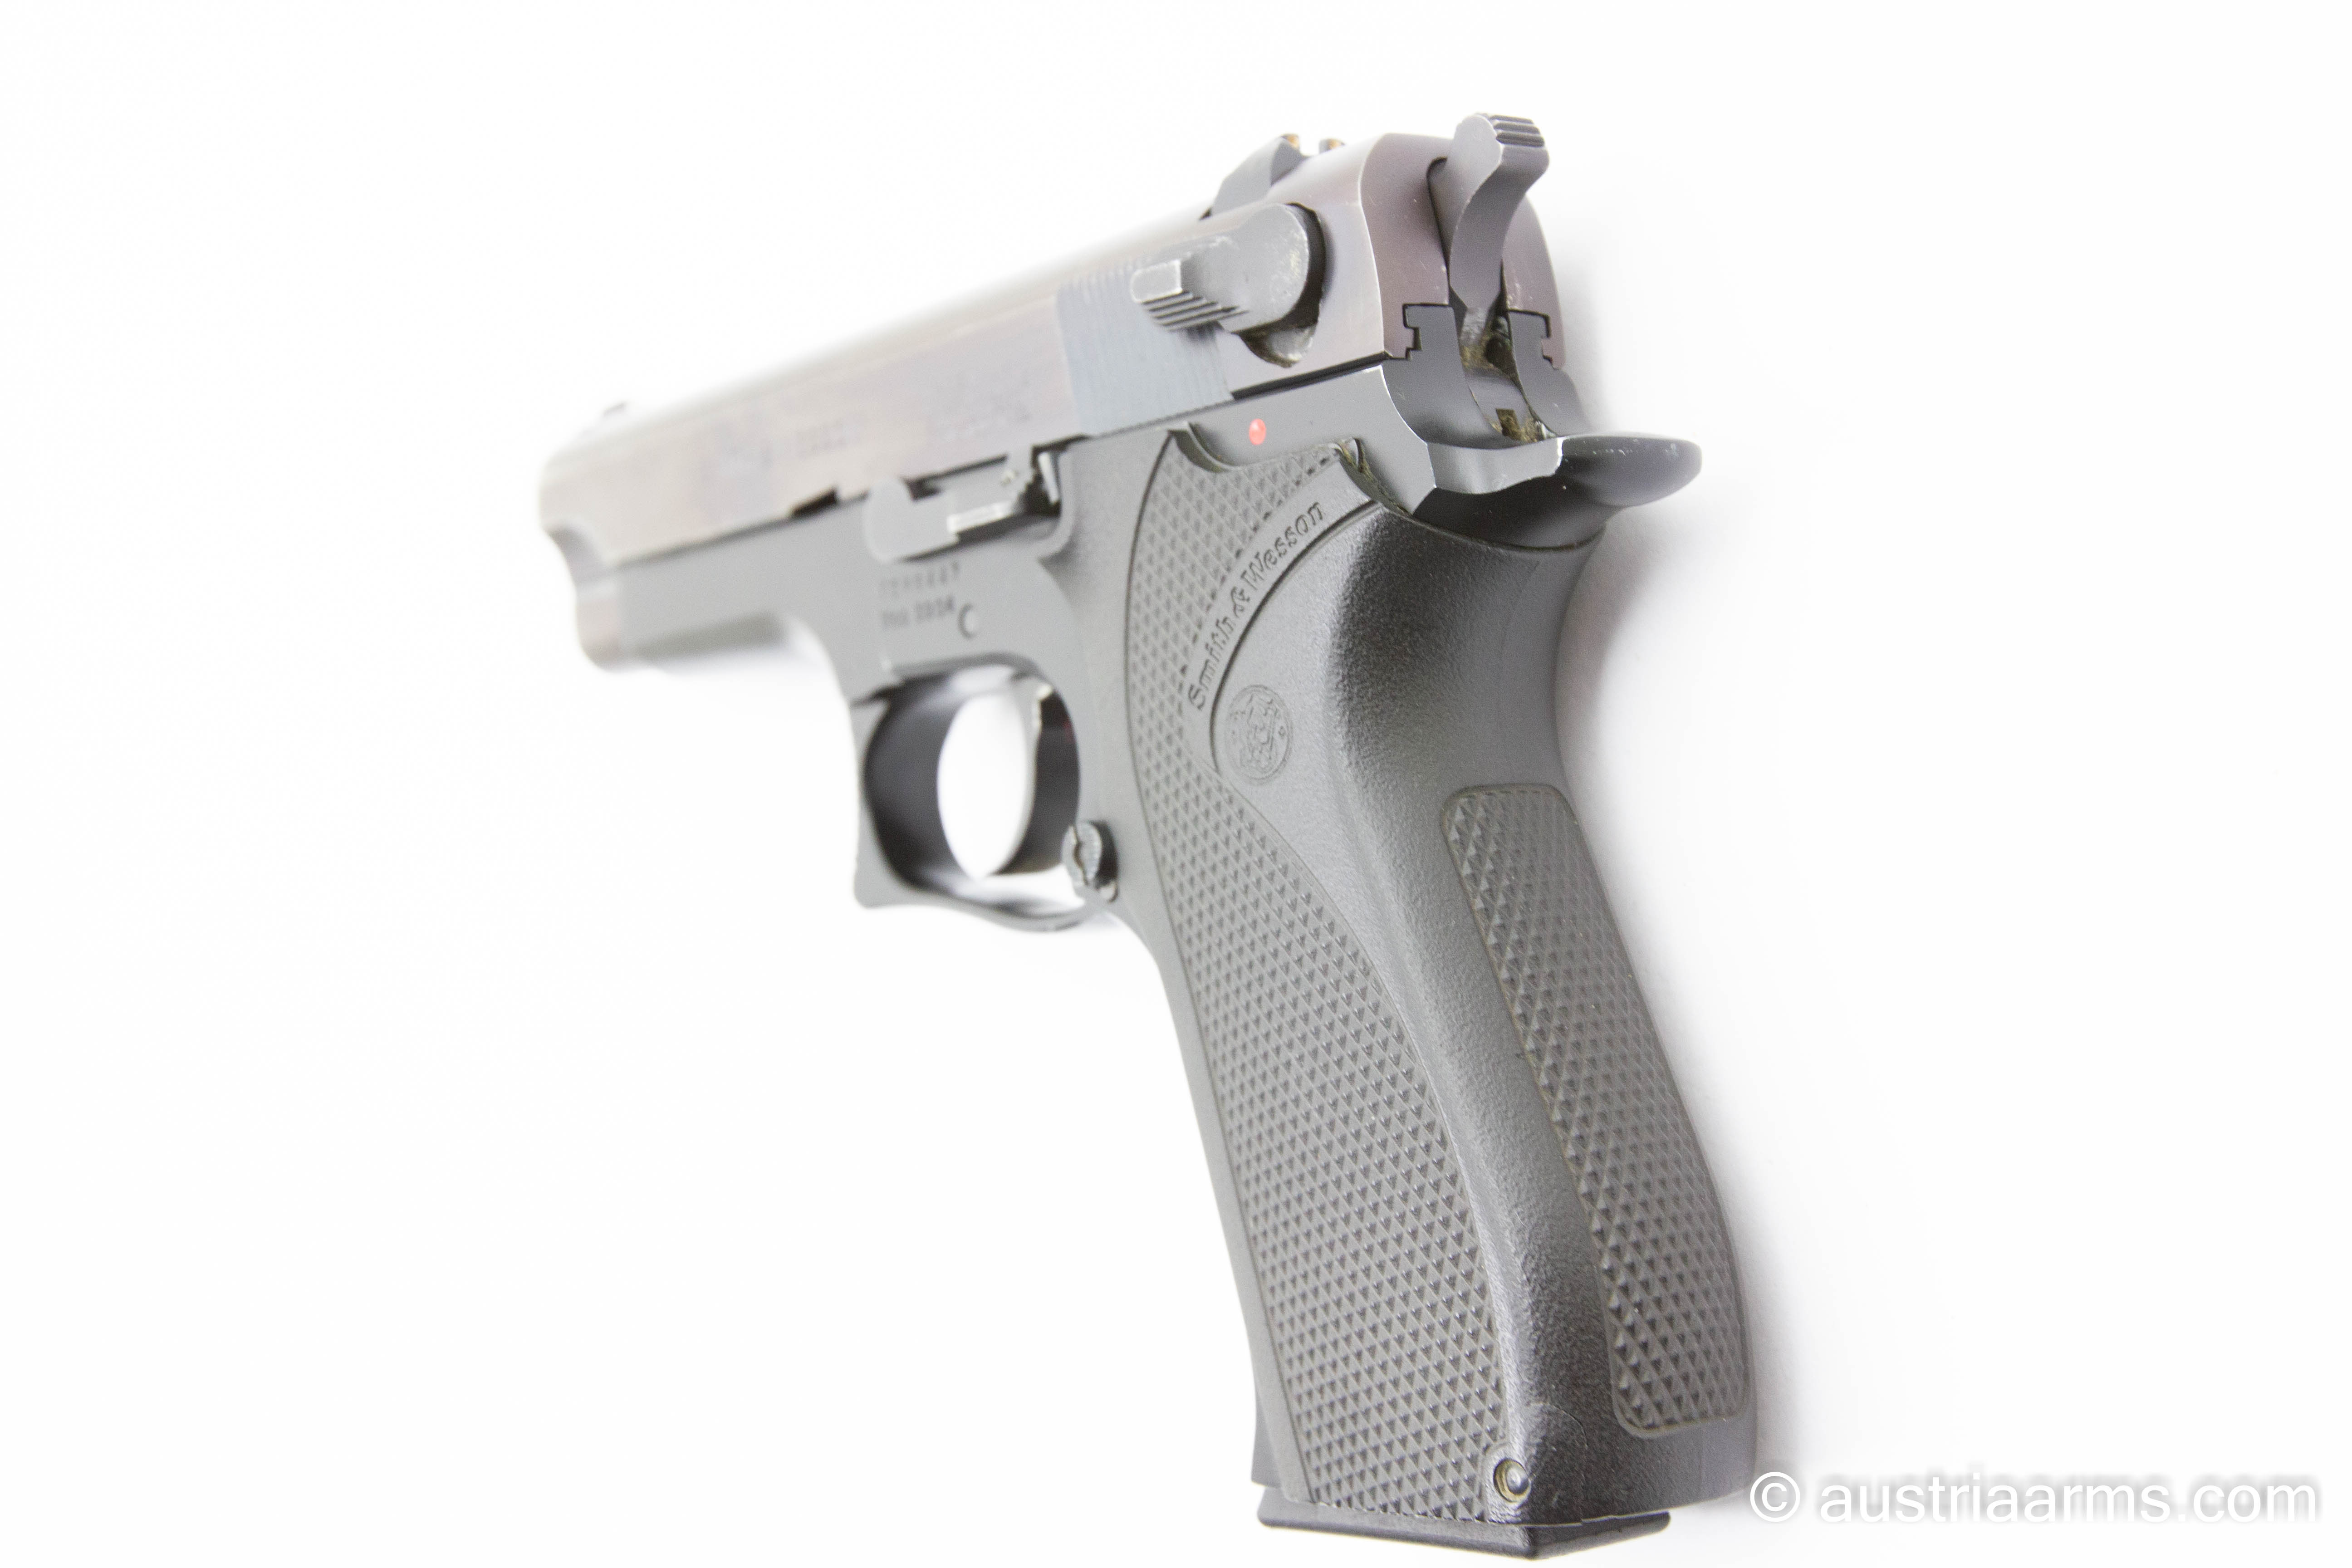 Smith & Wesson 5904, 9 x 19 mm - Image 2